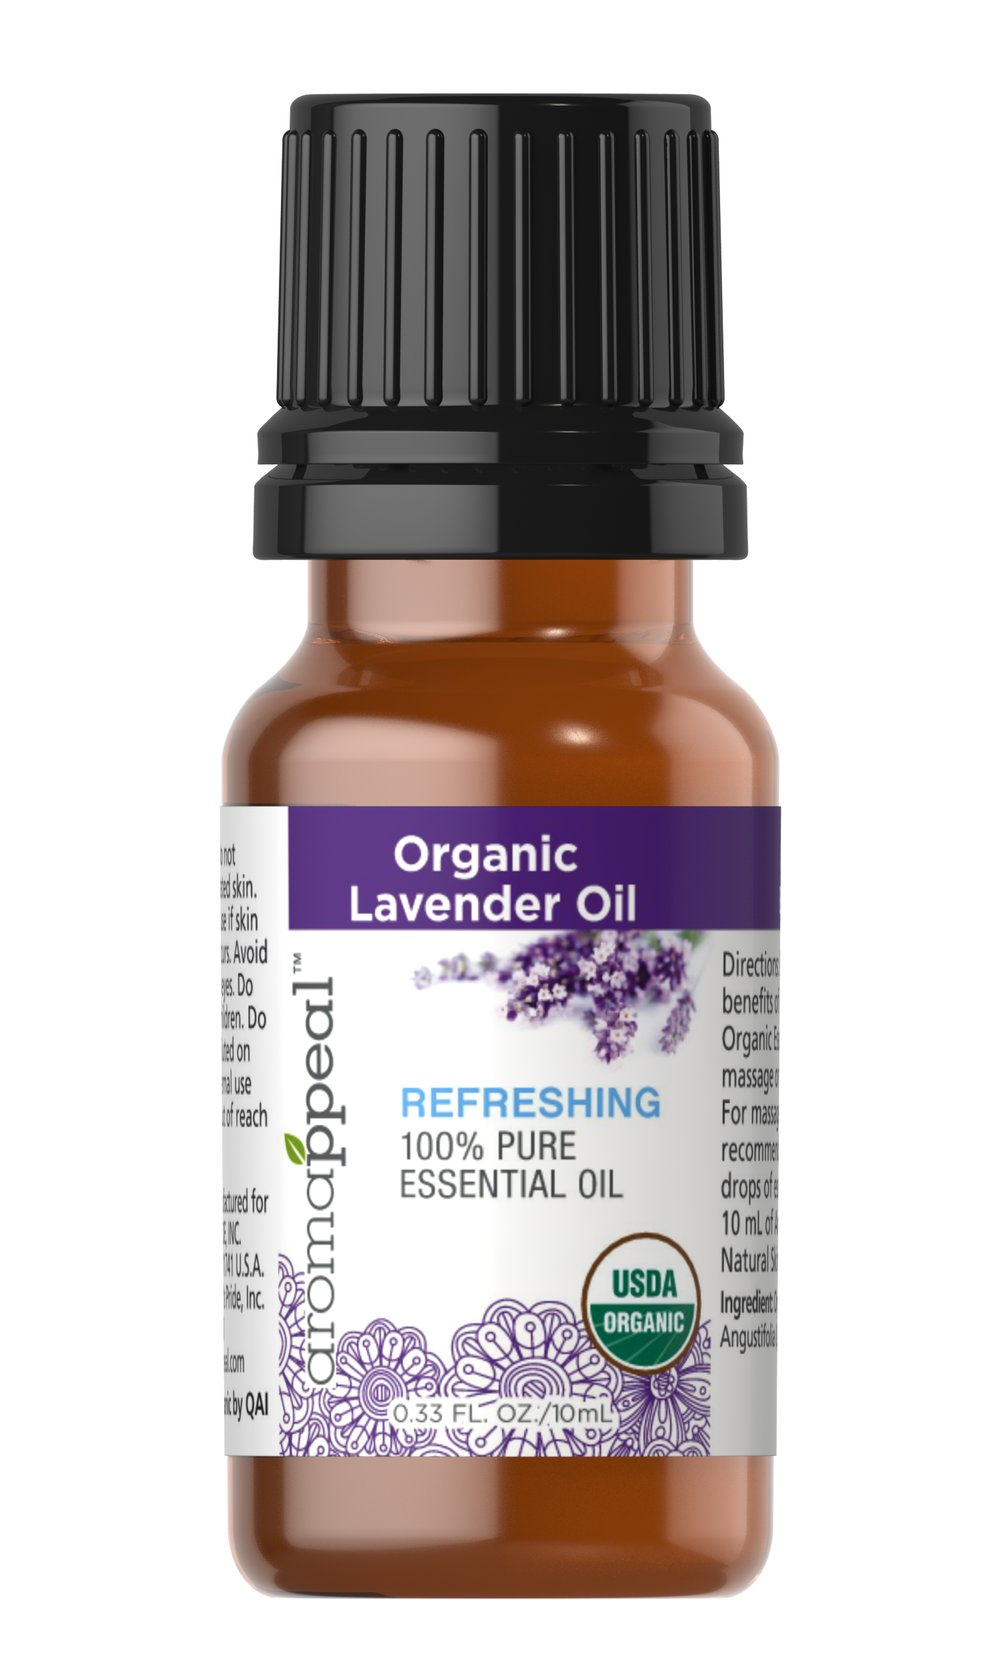 Organic Lavender Oil <p><strong>NEW! Organic Aromappeal - USDA</strong></p><p>Tranquility and serenity, meditation, overall soothing and comforting – especially when used in massage.</p><ul><li>    Botanical Name: Lavandula Angustifolia</li><li>    Plant Part: Flowers</li><li>    Extraction Method: Steam Distillation</li><li>&nbs